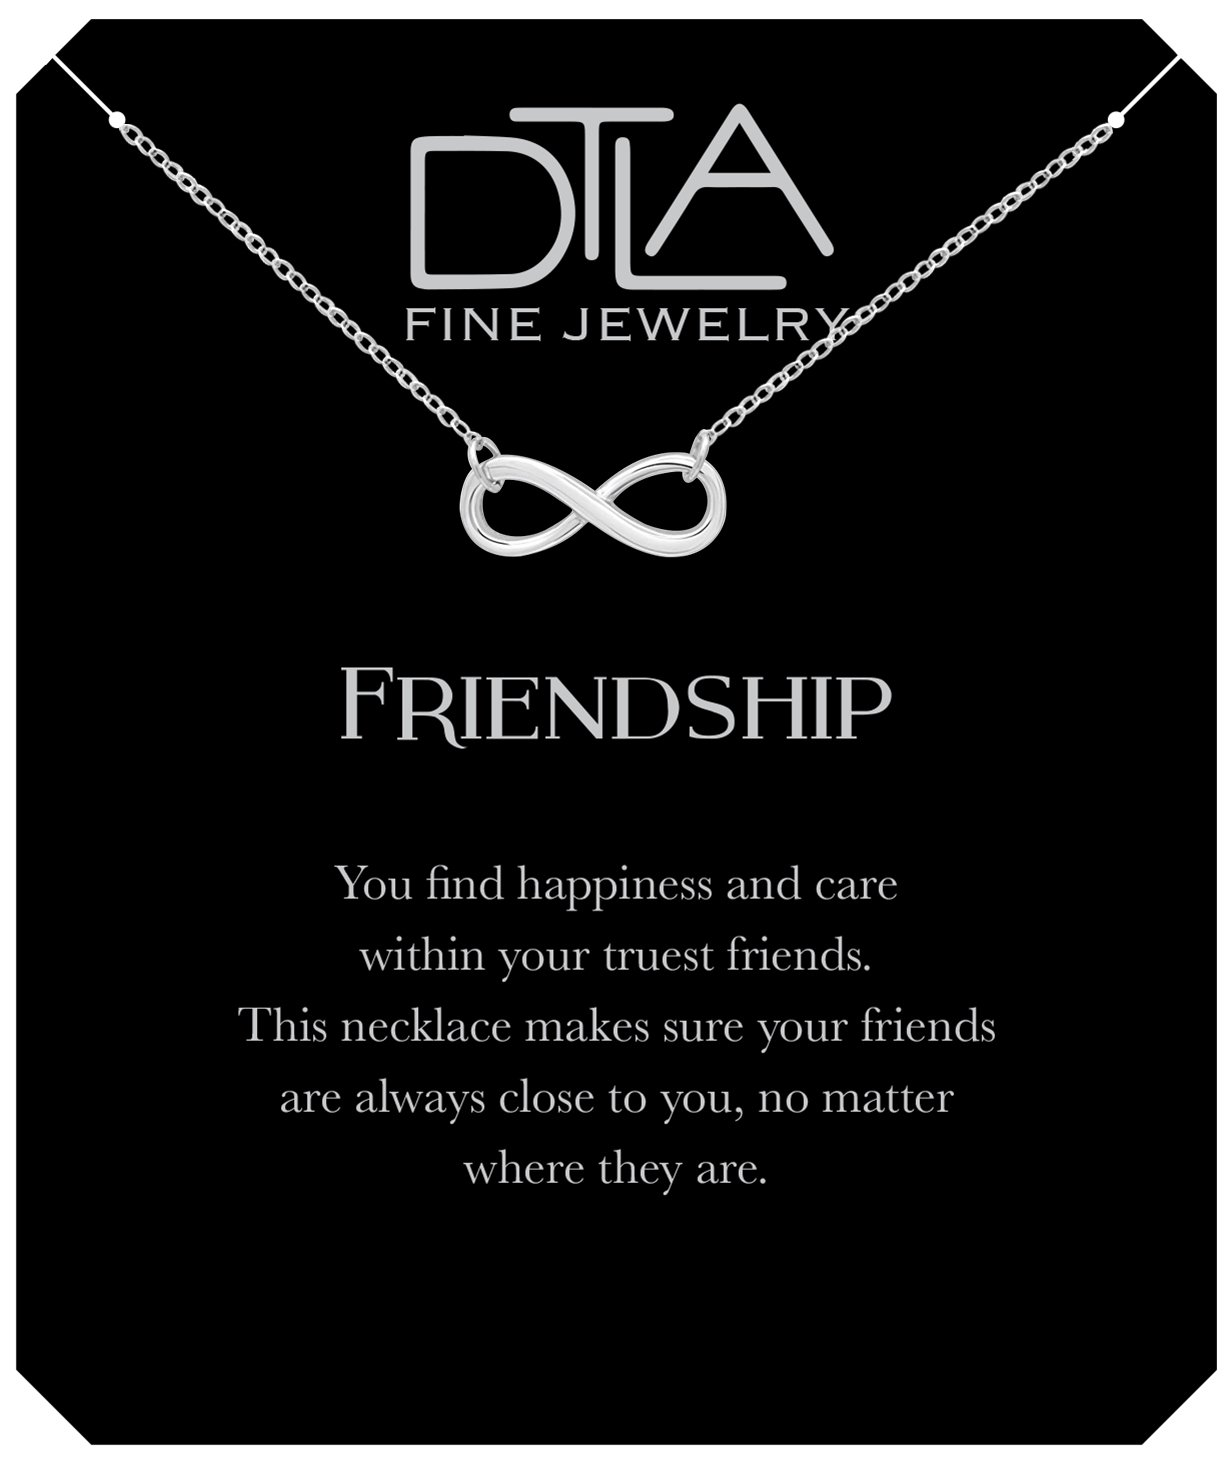 DTLA Friendship Infinity Necklace in Sterling Silver with Inspirational Quote Card - Silver by DTLA Fine Jewelry (Image #1)